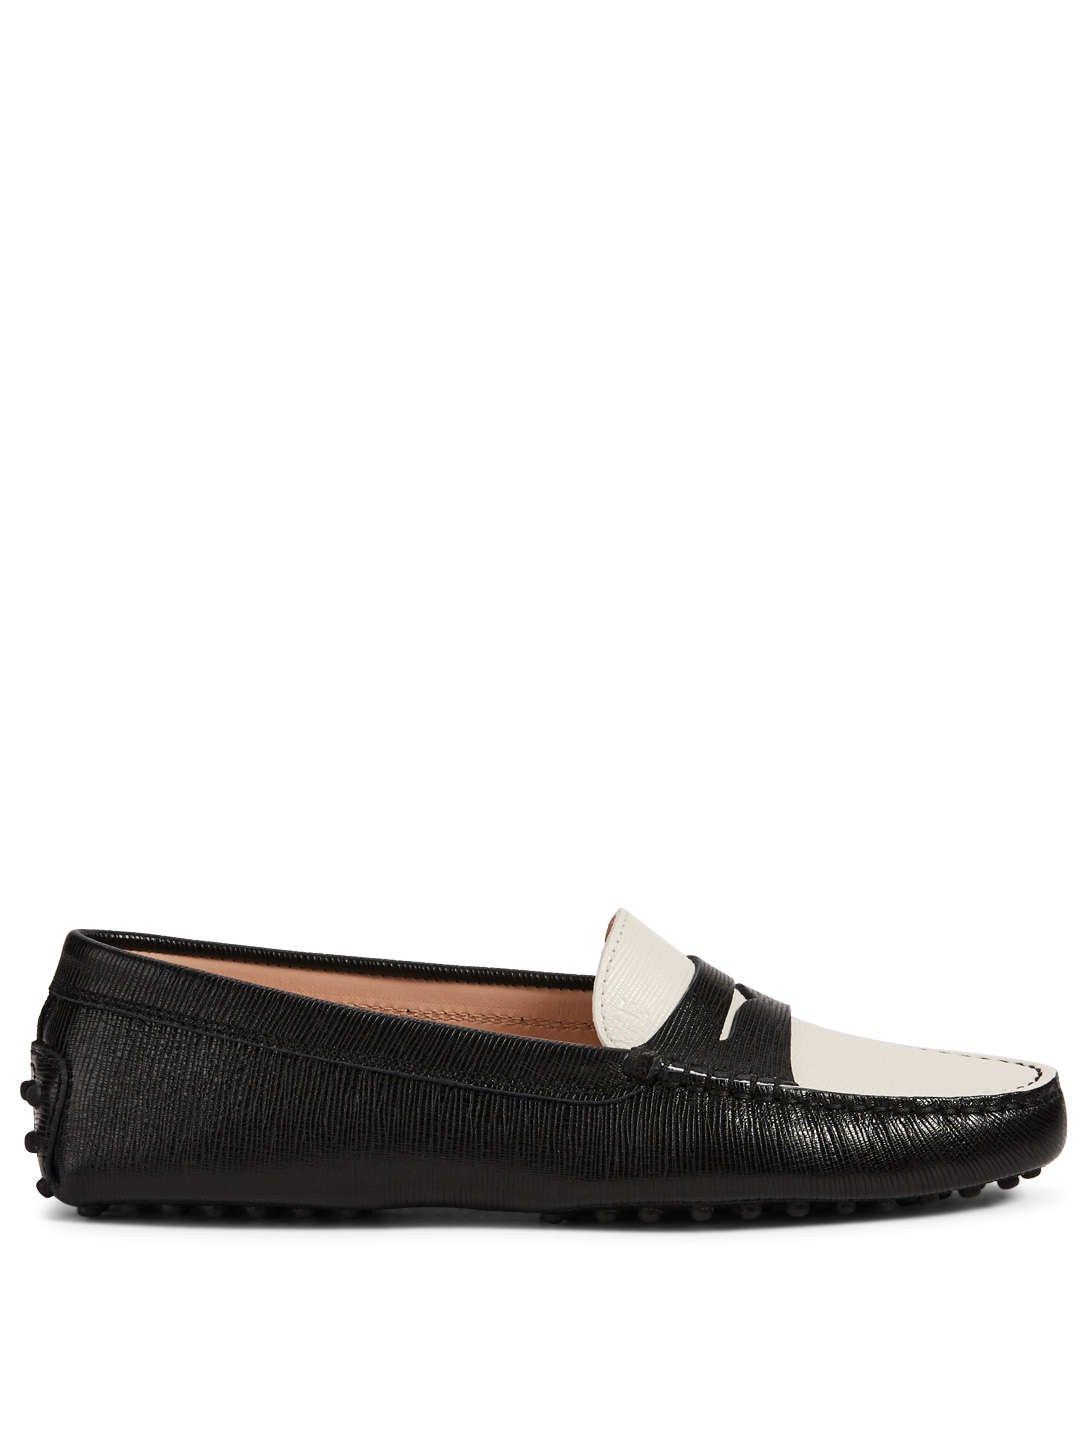 efb58507b3e TOD'S Gommino Bi-Colour Leather Driving Shoes | Holt Renfrew